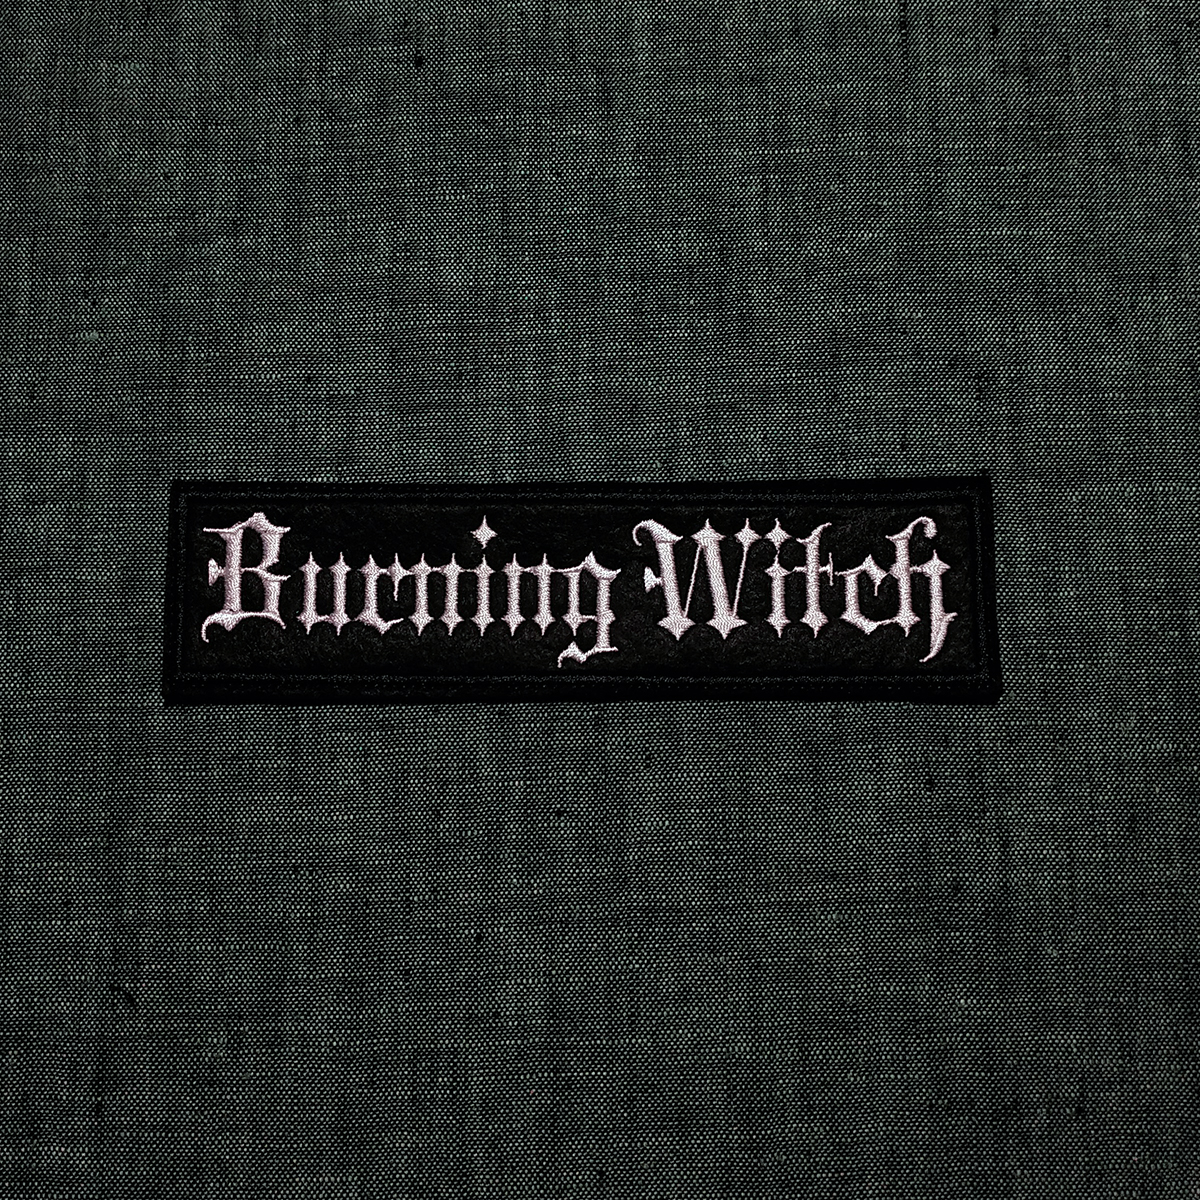 Patch Burning Witch doom metal band.